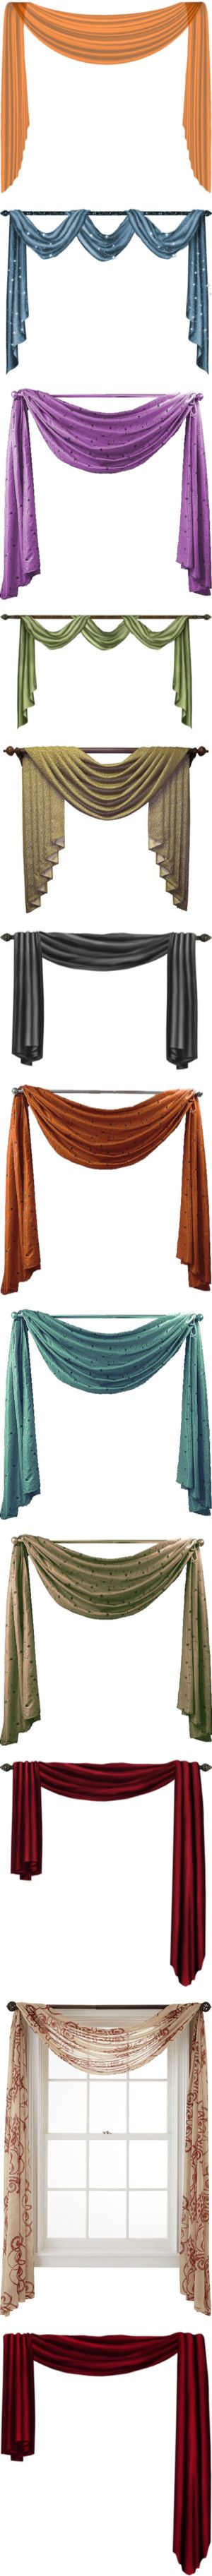 Curtain Valances For Bedroom 17 Best Ideas About Scarf Valance On Pinterest Window Curtain